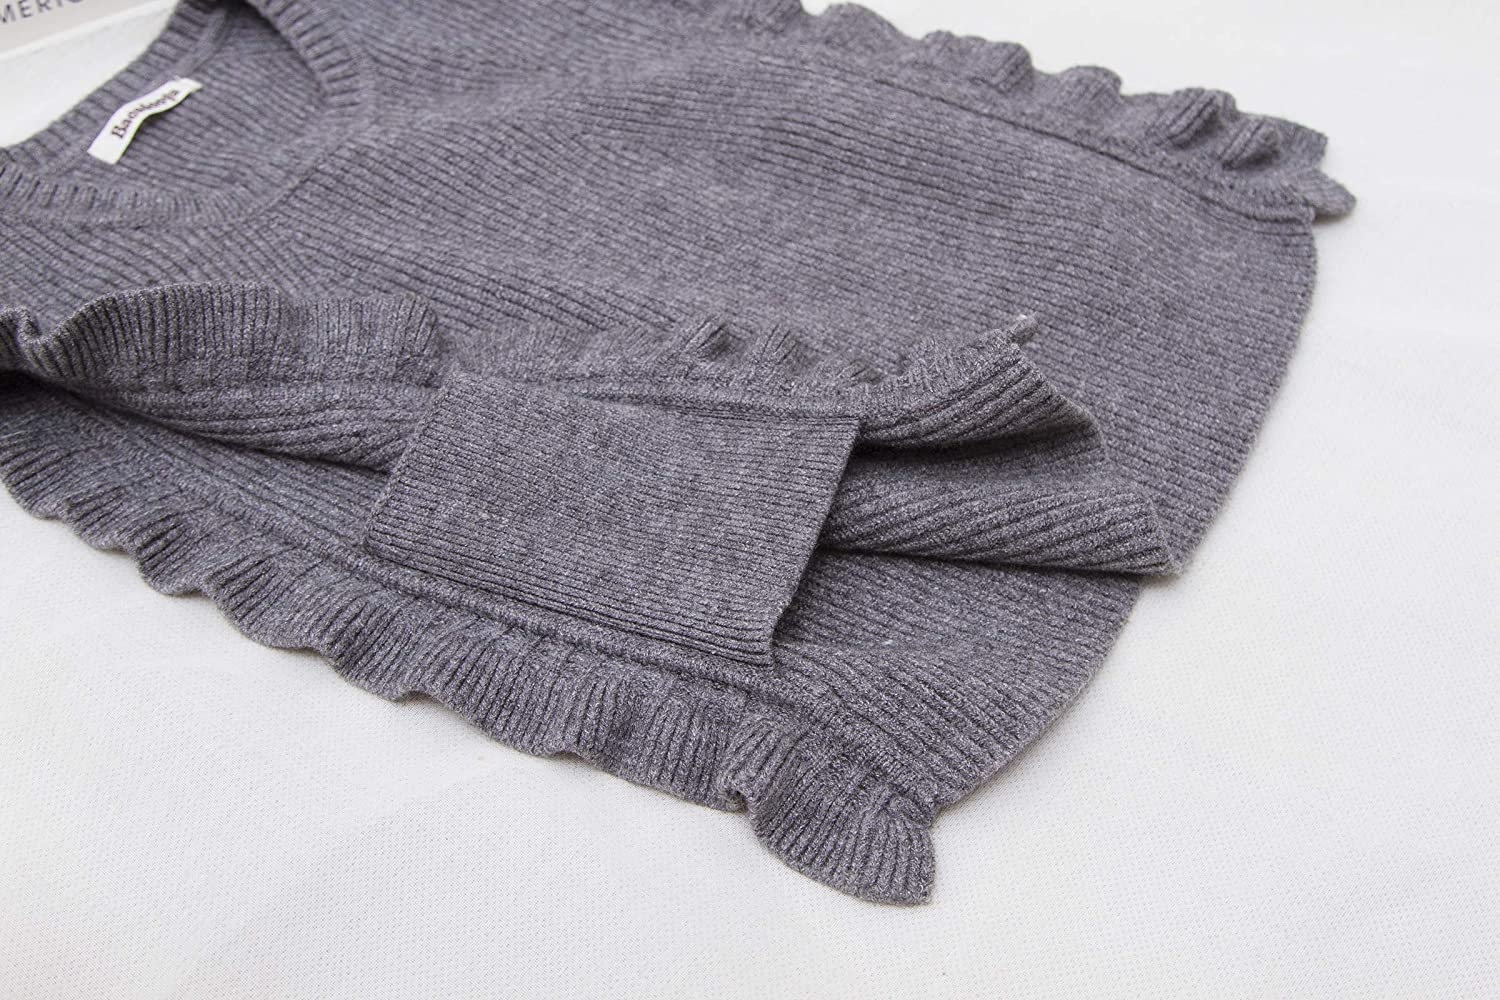 Baosdooya Autumn Knitted Sweater Vast for Children